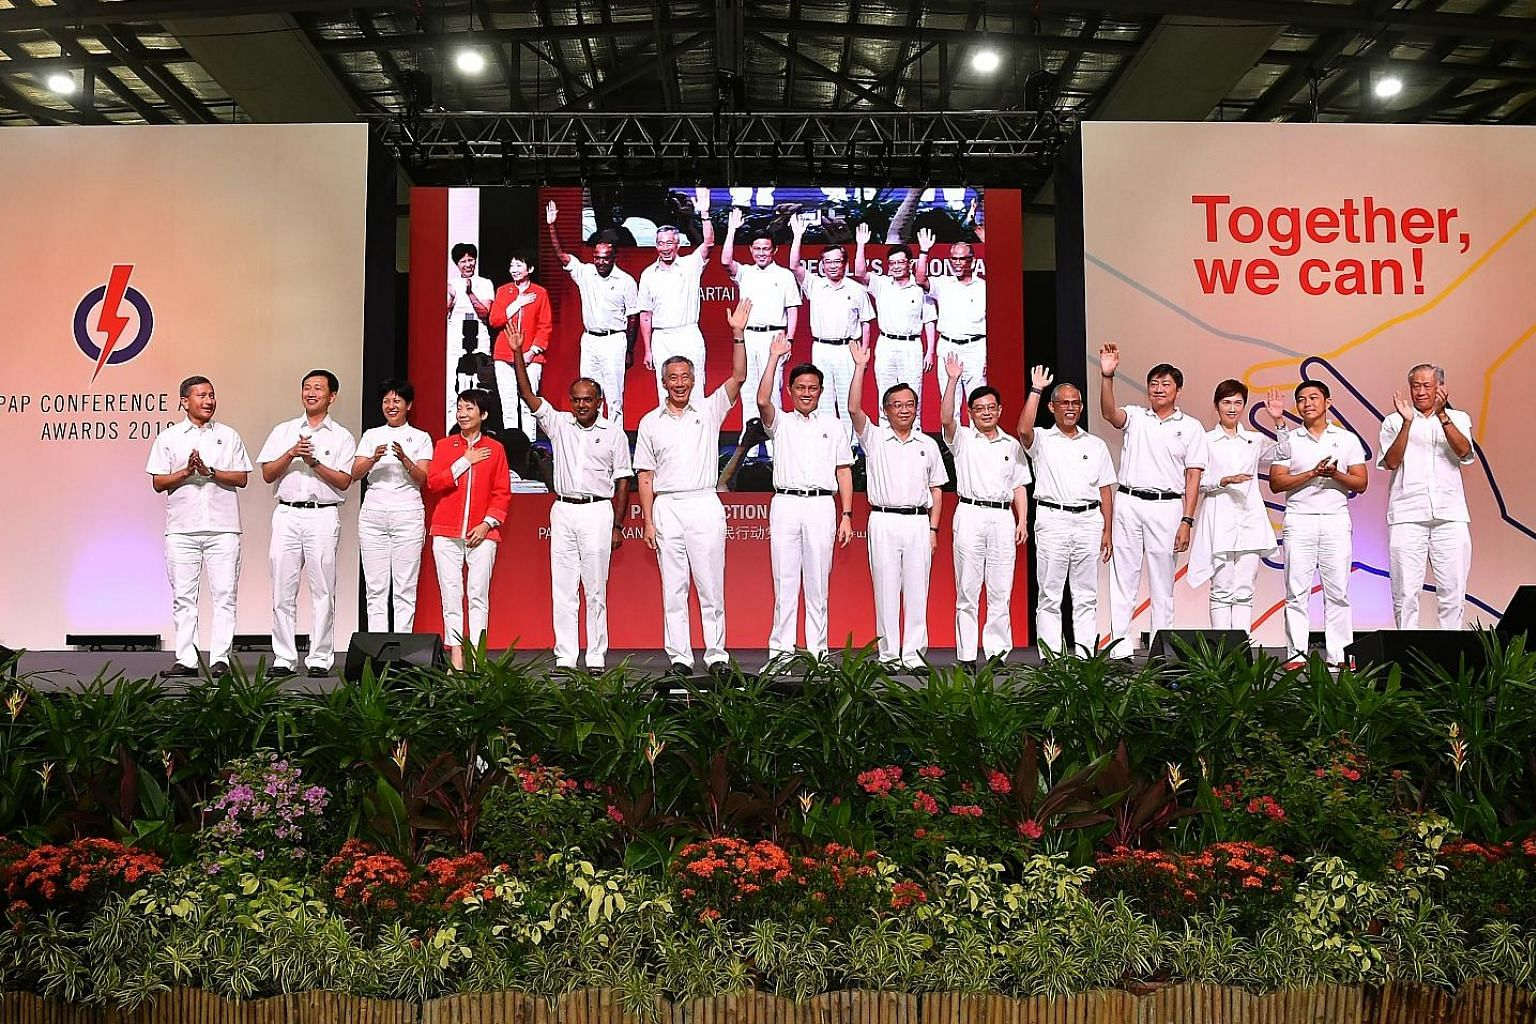 Prime Minister Lee Hsien Loong with the new line-up of People's Action Party central executive committee members elected and co-opted at the party conference yesterday. With him are (from left) Foreign Minister Vivian Balakrishnan; Education Minister